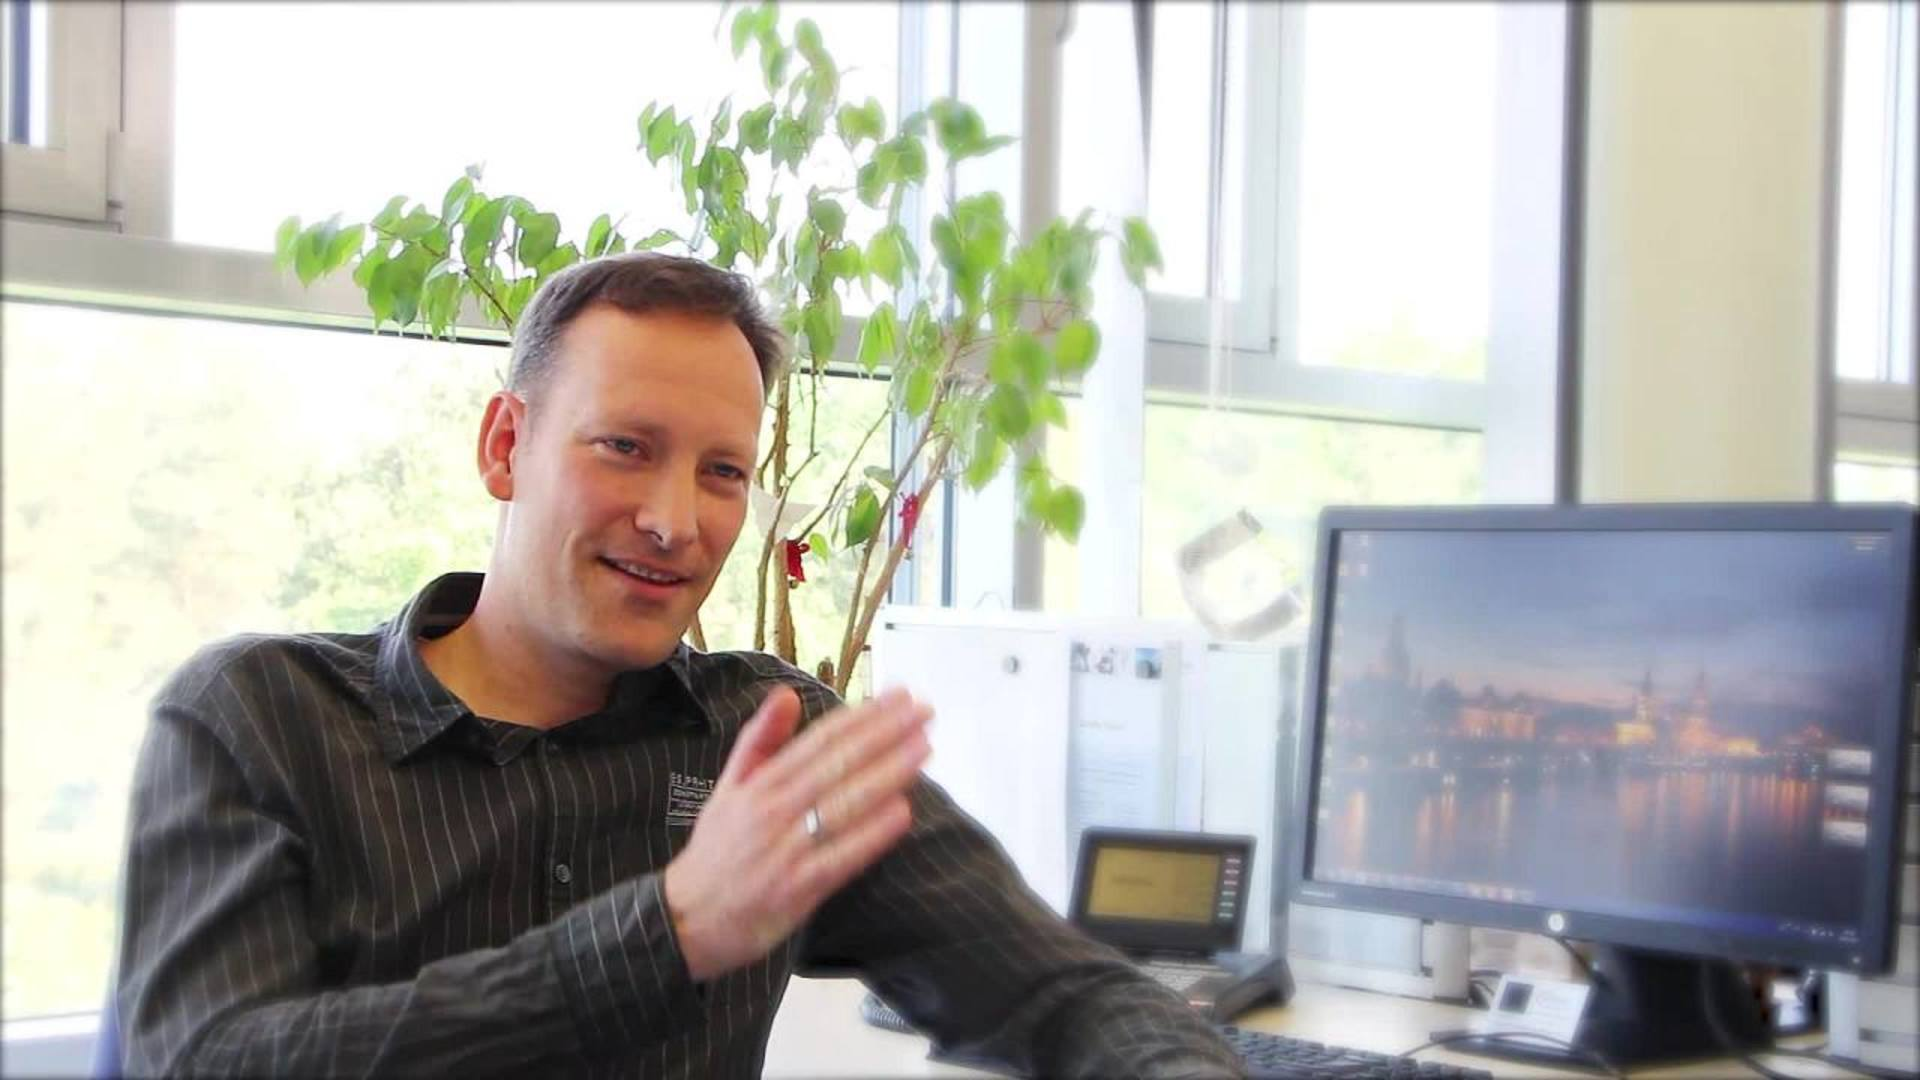 Our colleague Marcus tells you more about his job as a Process Engineer in Dresden